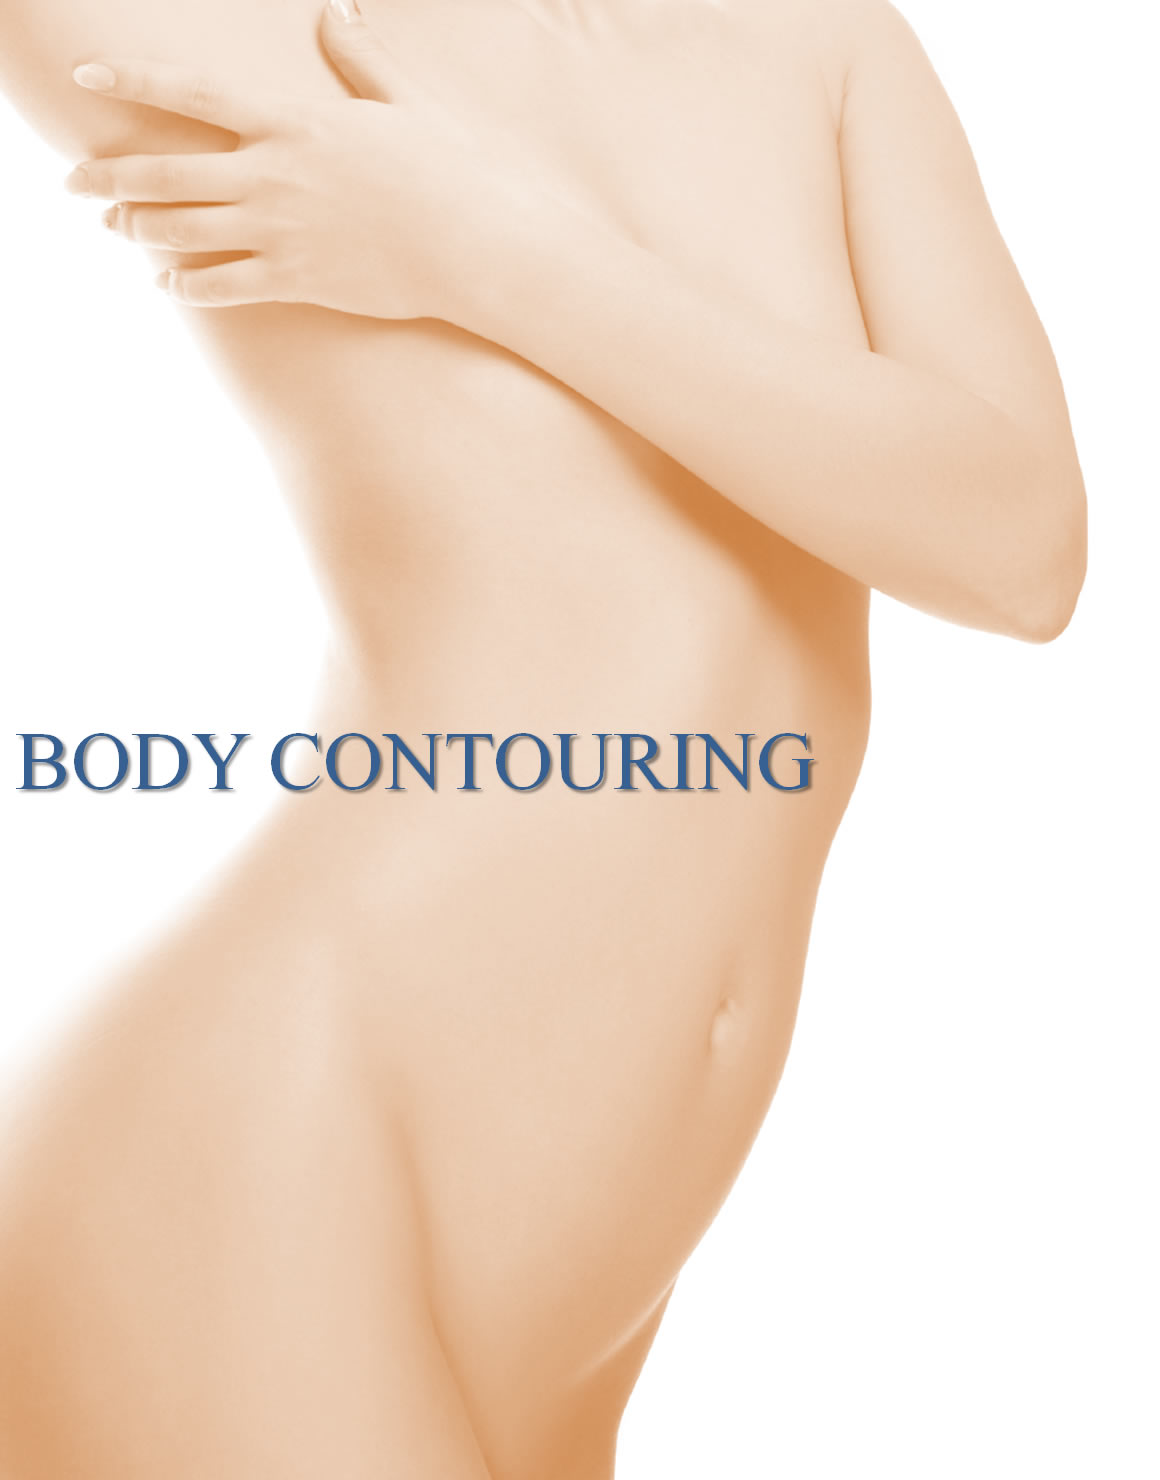 bodysculptin with different aesthetic procedures